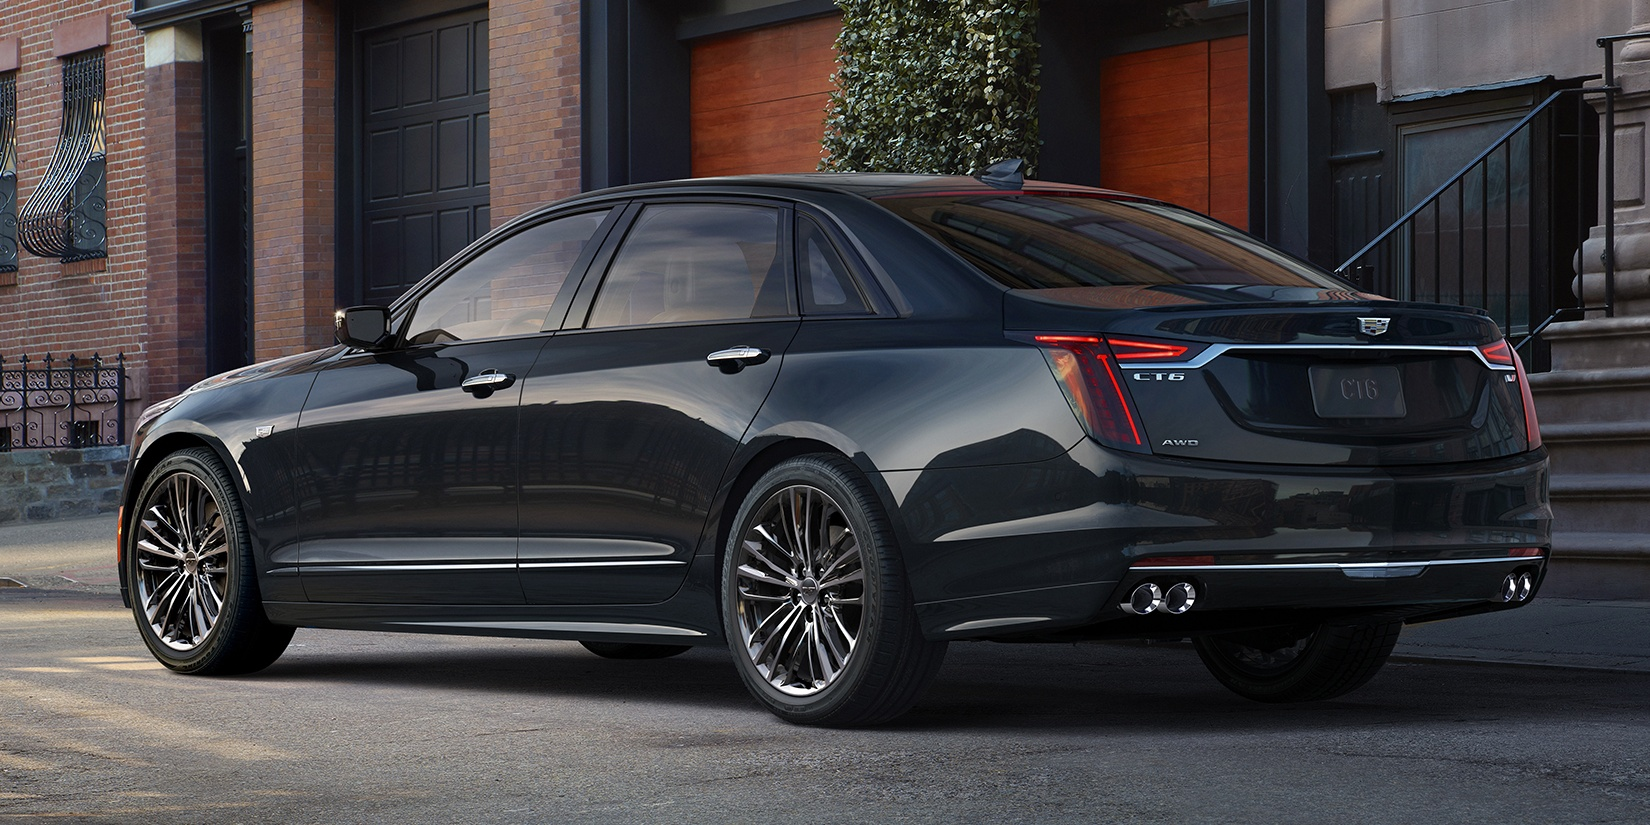 2019 cadillac ct6 v sport with new 4 2l twin turbo v8 paul tan image 794752. Black Bedroom Furniture Sets. Home Design Ideas